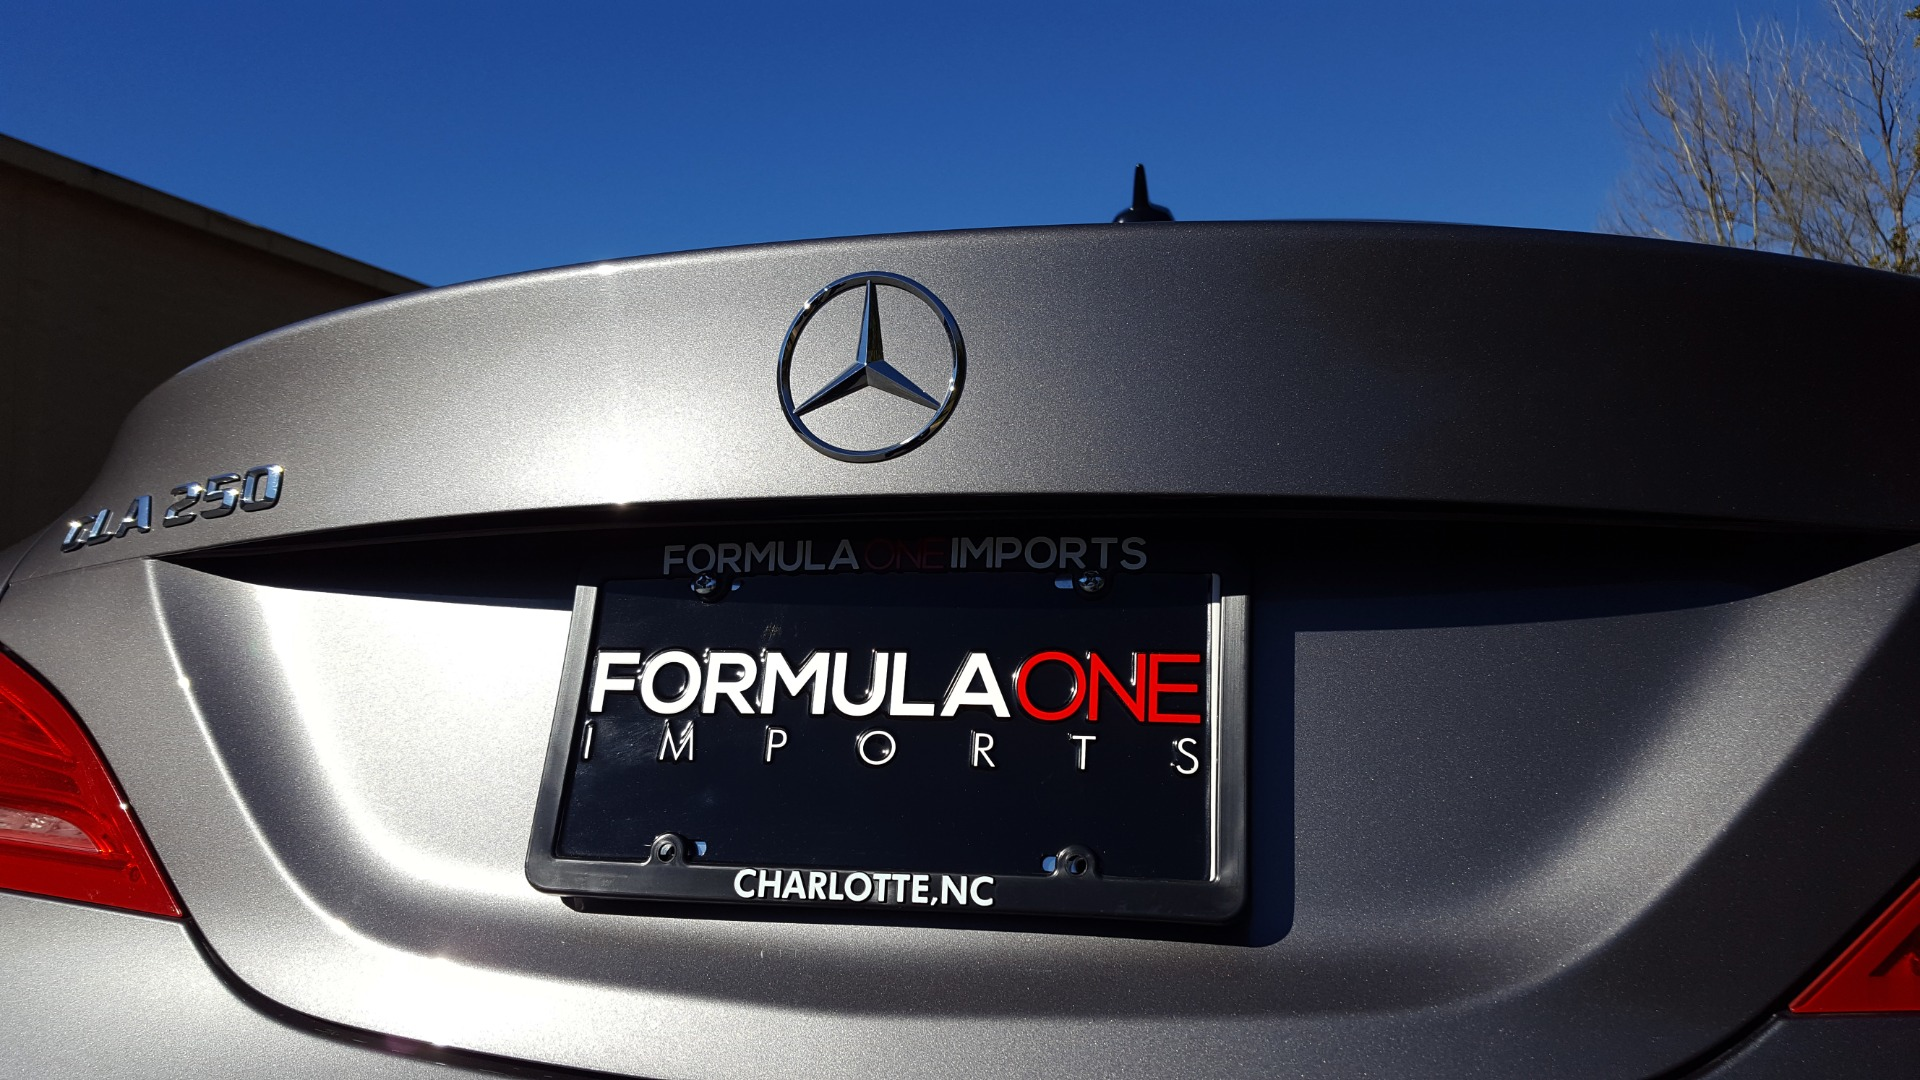 Used 2014 Mercedes-Benz CLA-CLASS CLA 250 / NAV / PANO-ROOF / BLIND SPOT ASSIST / XENON HEADLIGHTS for sale $19,995 at Formula Imports in Charlotte NC 28227 11